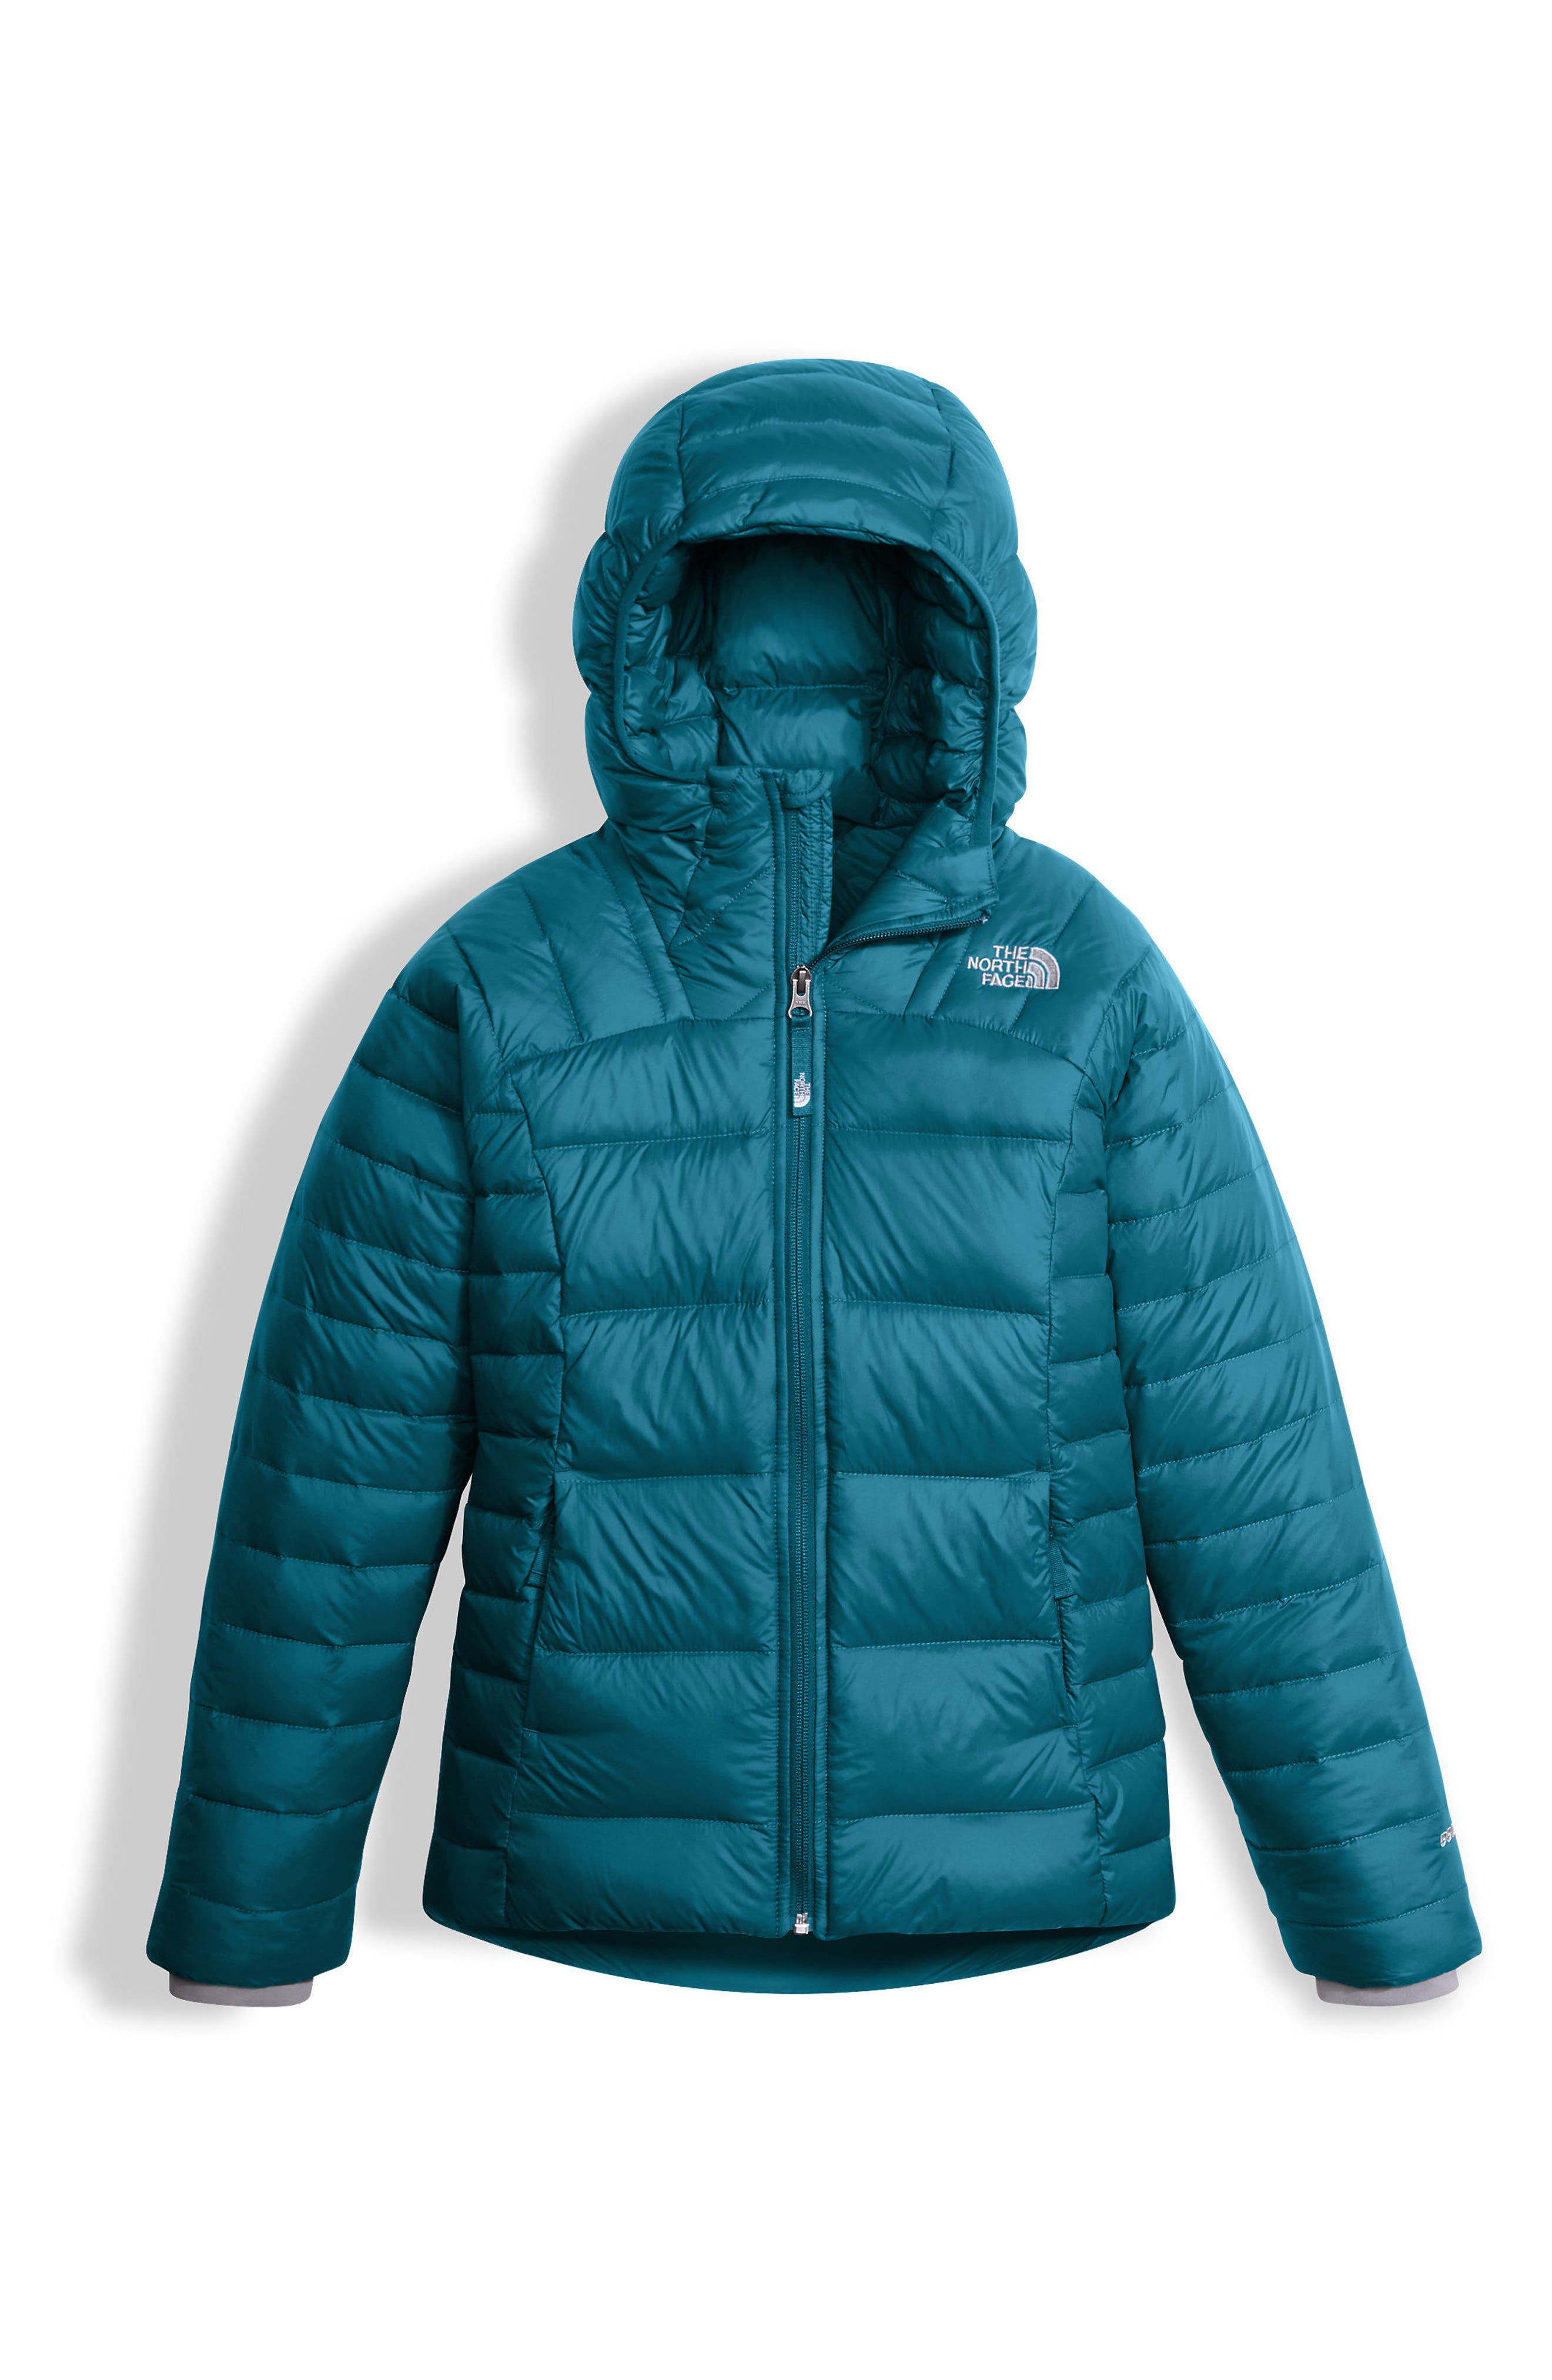 Alternate Image 1 Selected - The North Face Double Down Water Resistant 550-Fill Power Down Insulated Jacket (Little Girls & Big Girls)